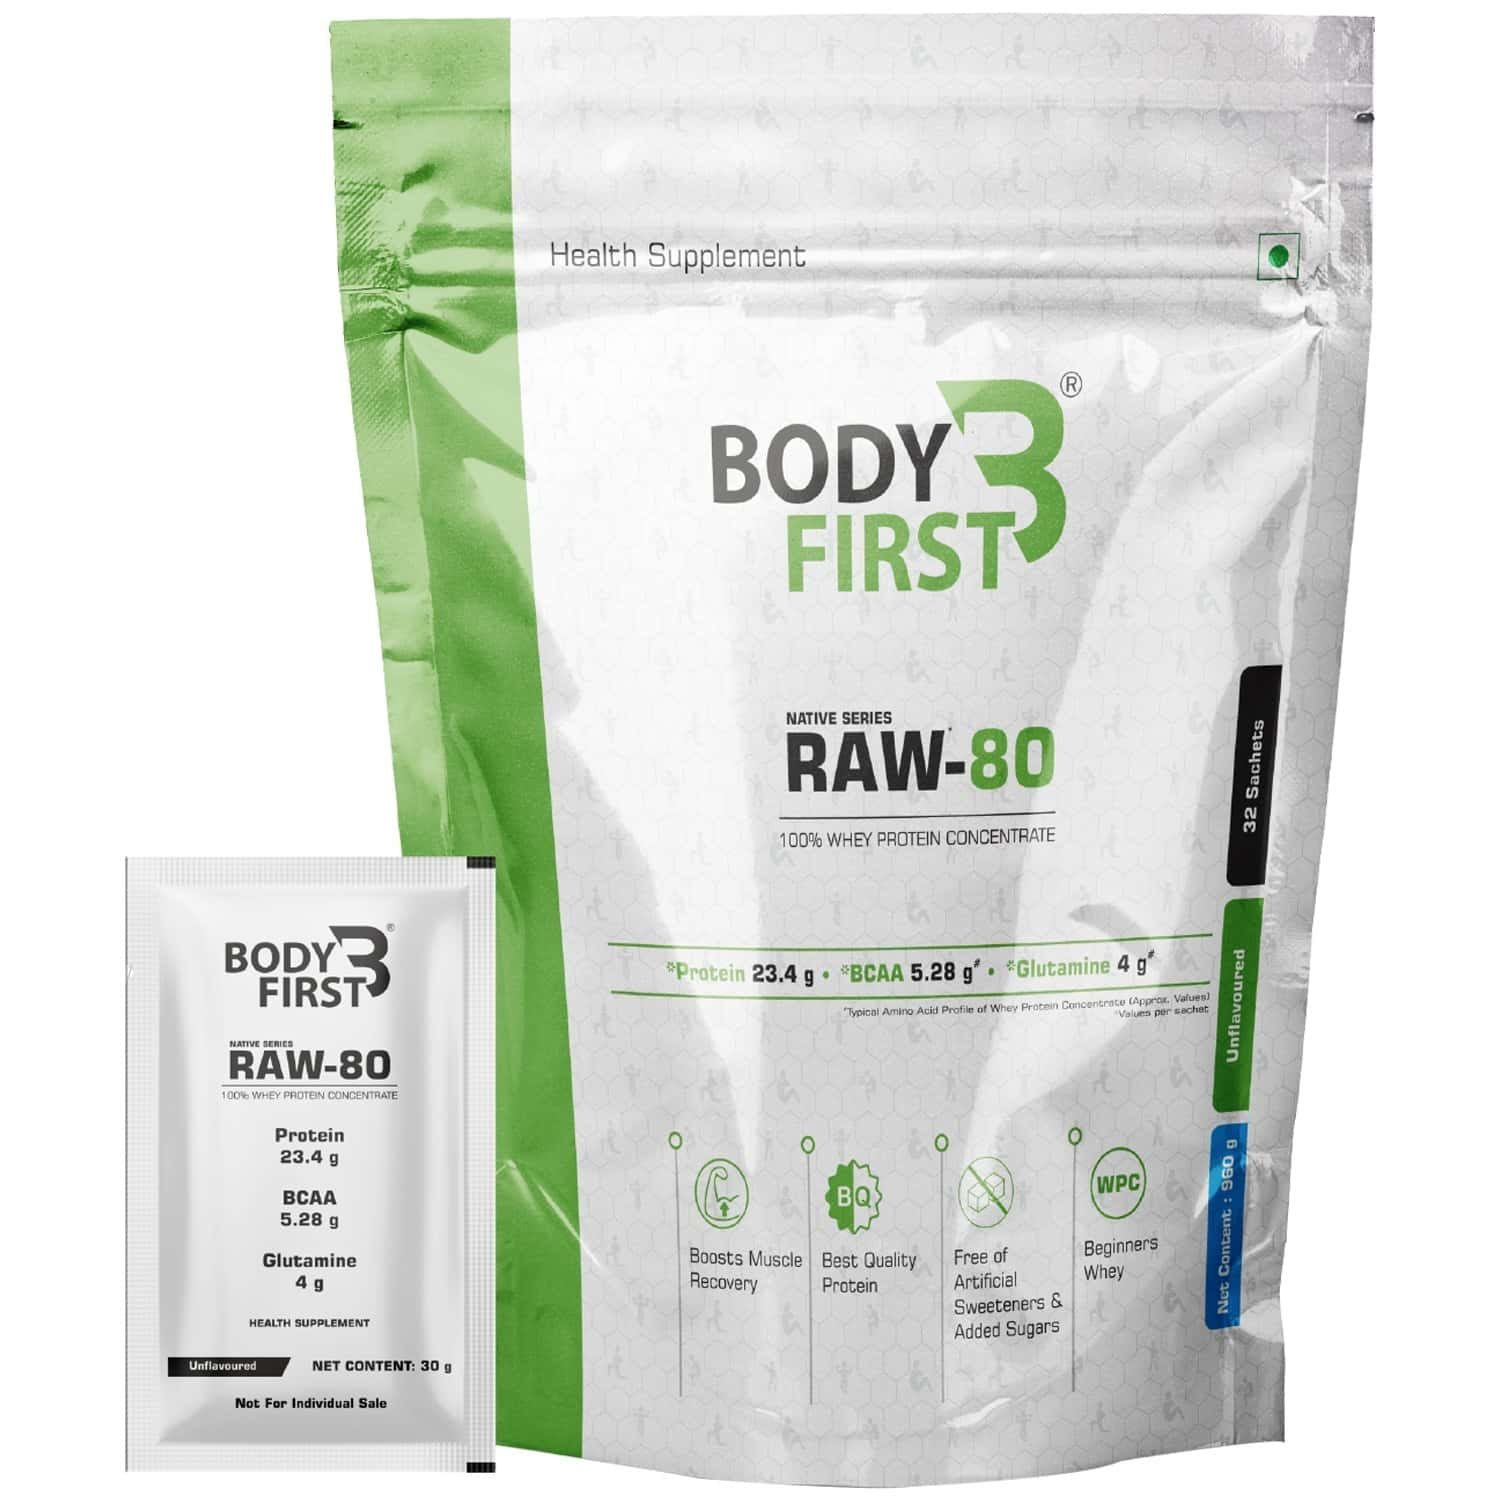 Bodyfirst Raw-80 (100% Whey Protein Concentrate)